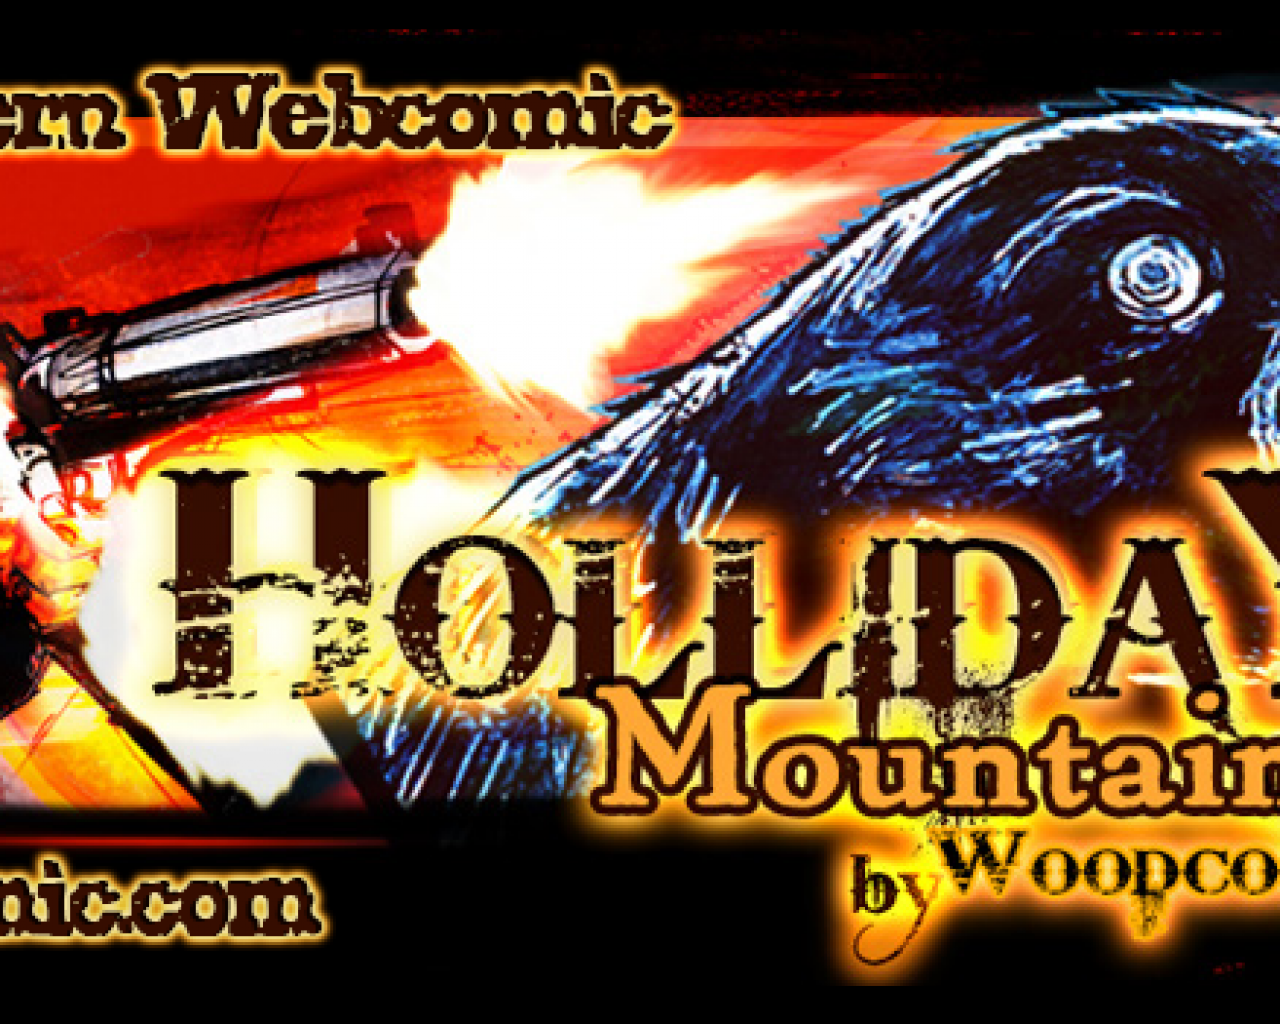 Poster Image for Holliday: Mountain Madness